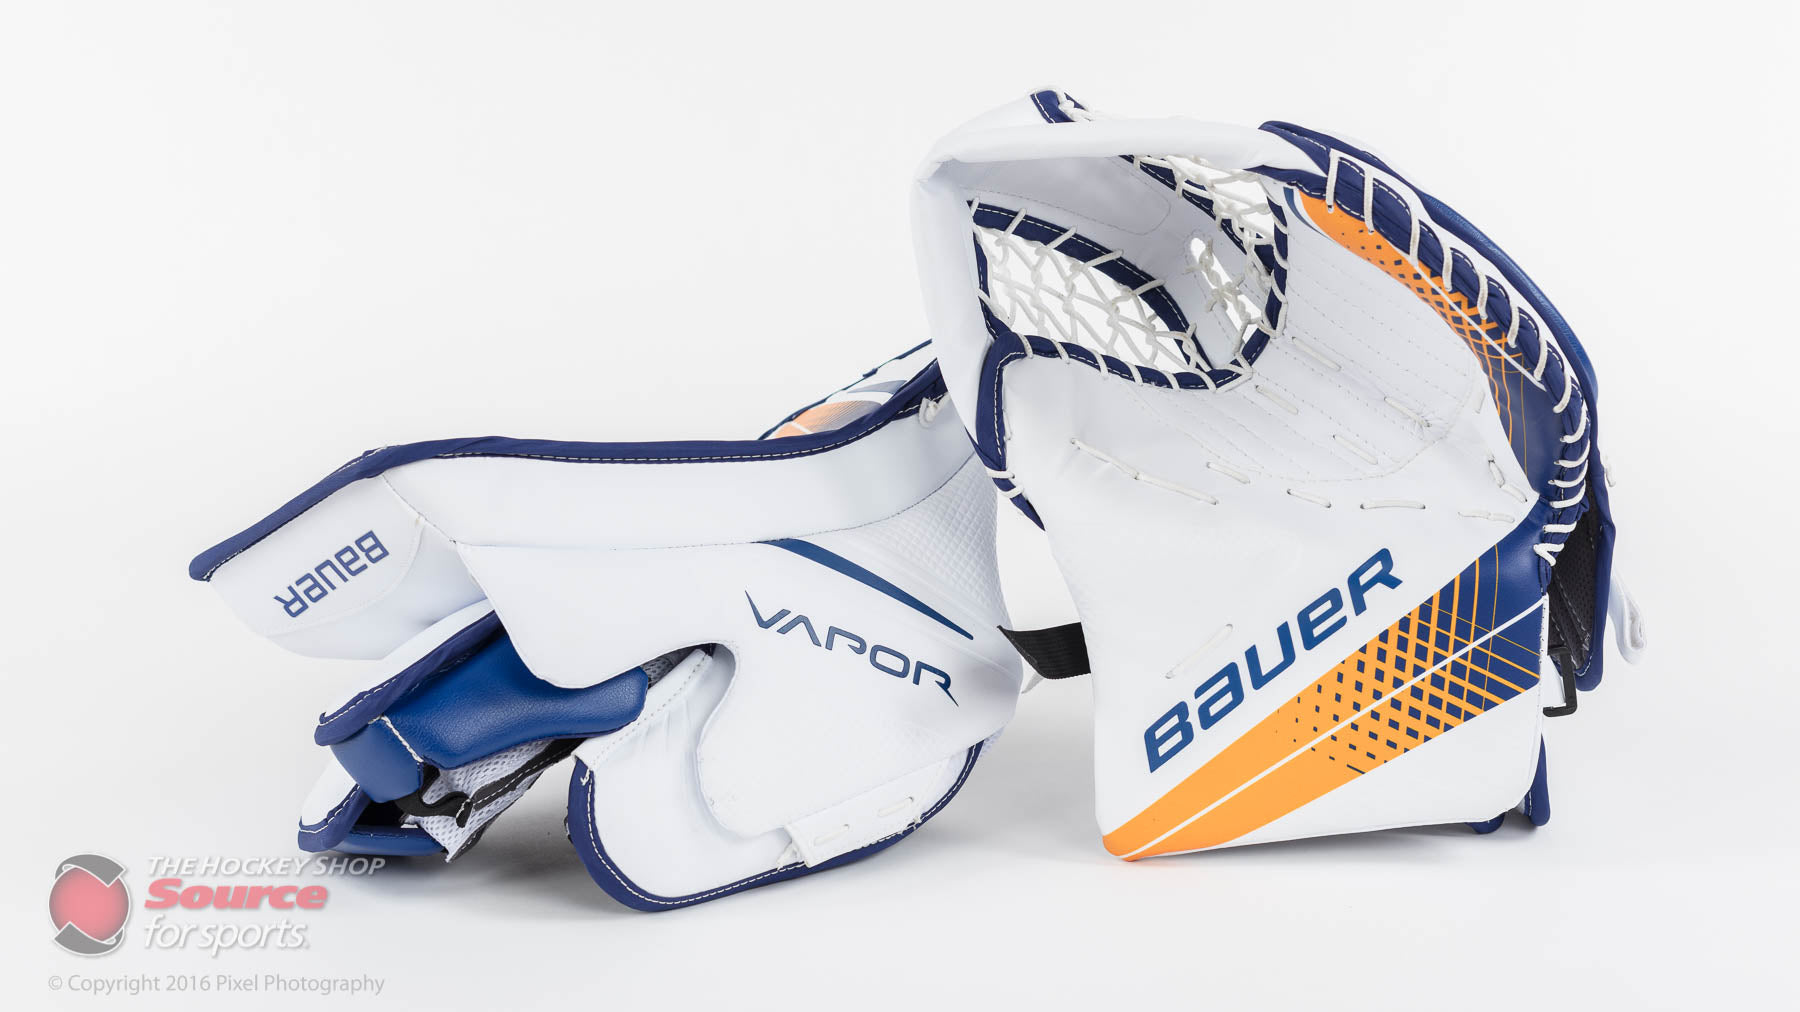 2017 Bauer Vapor 1X Blocker & Catcher